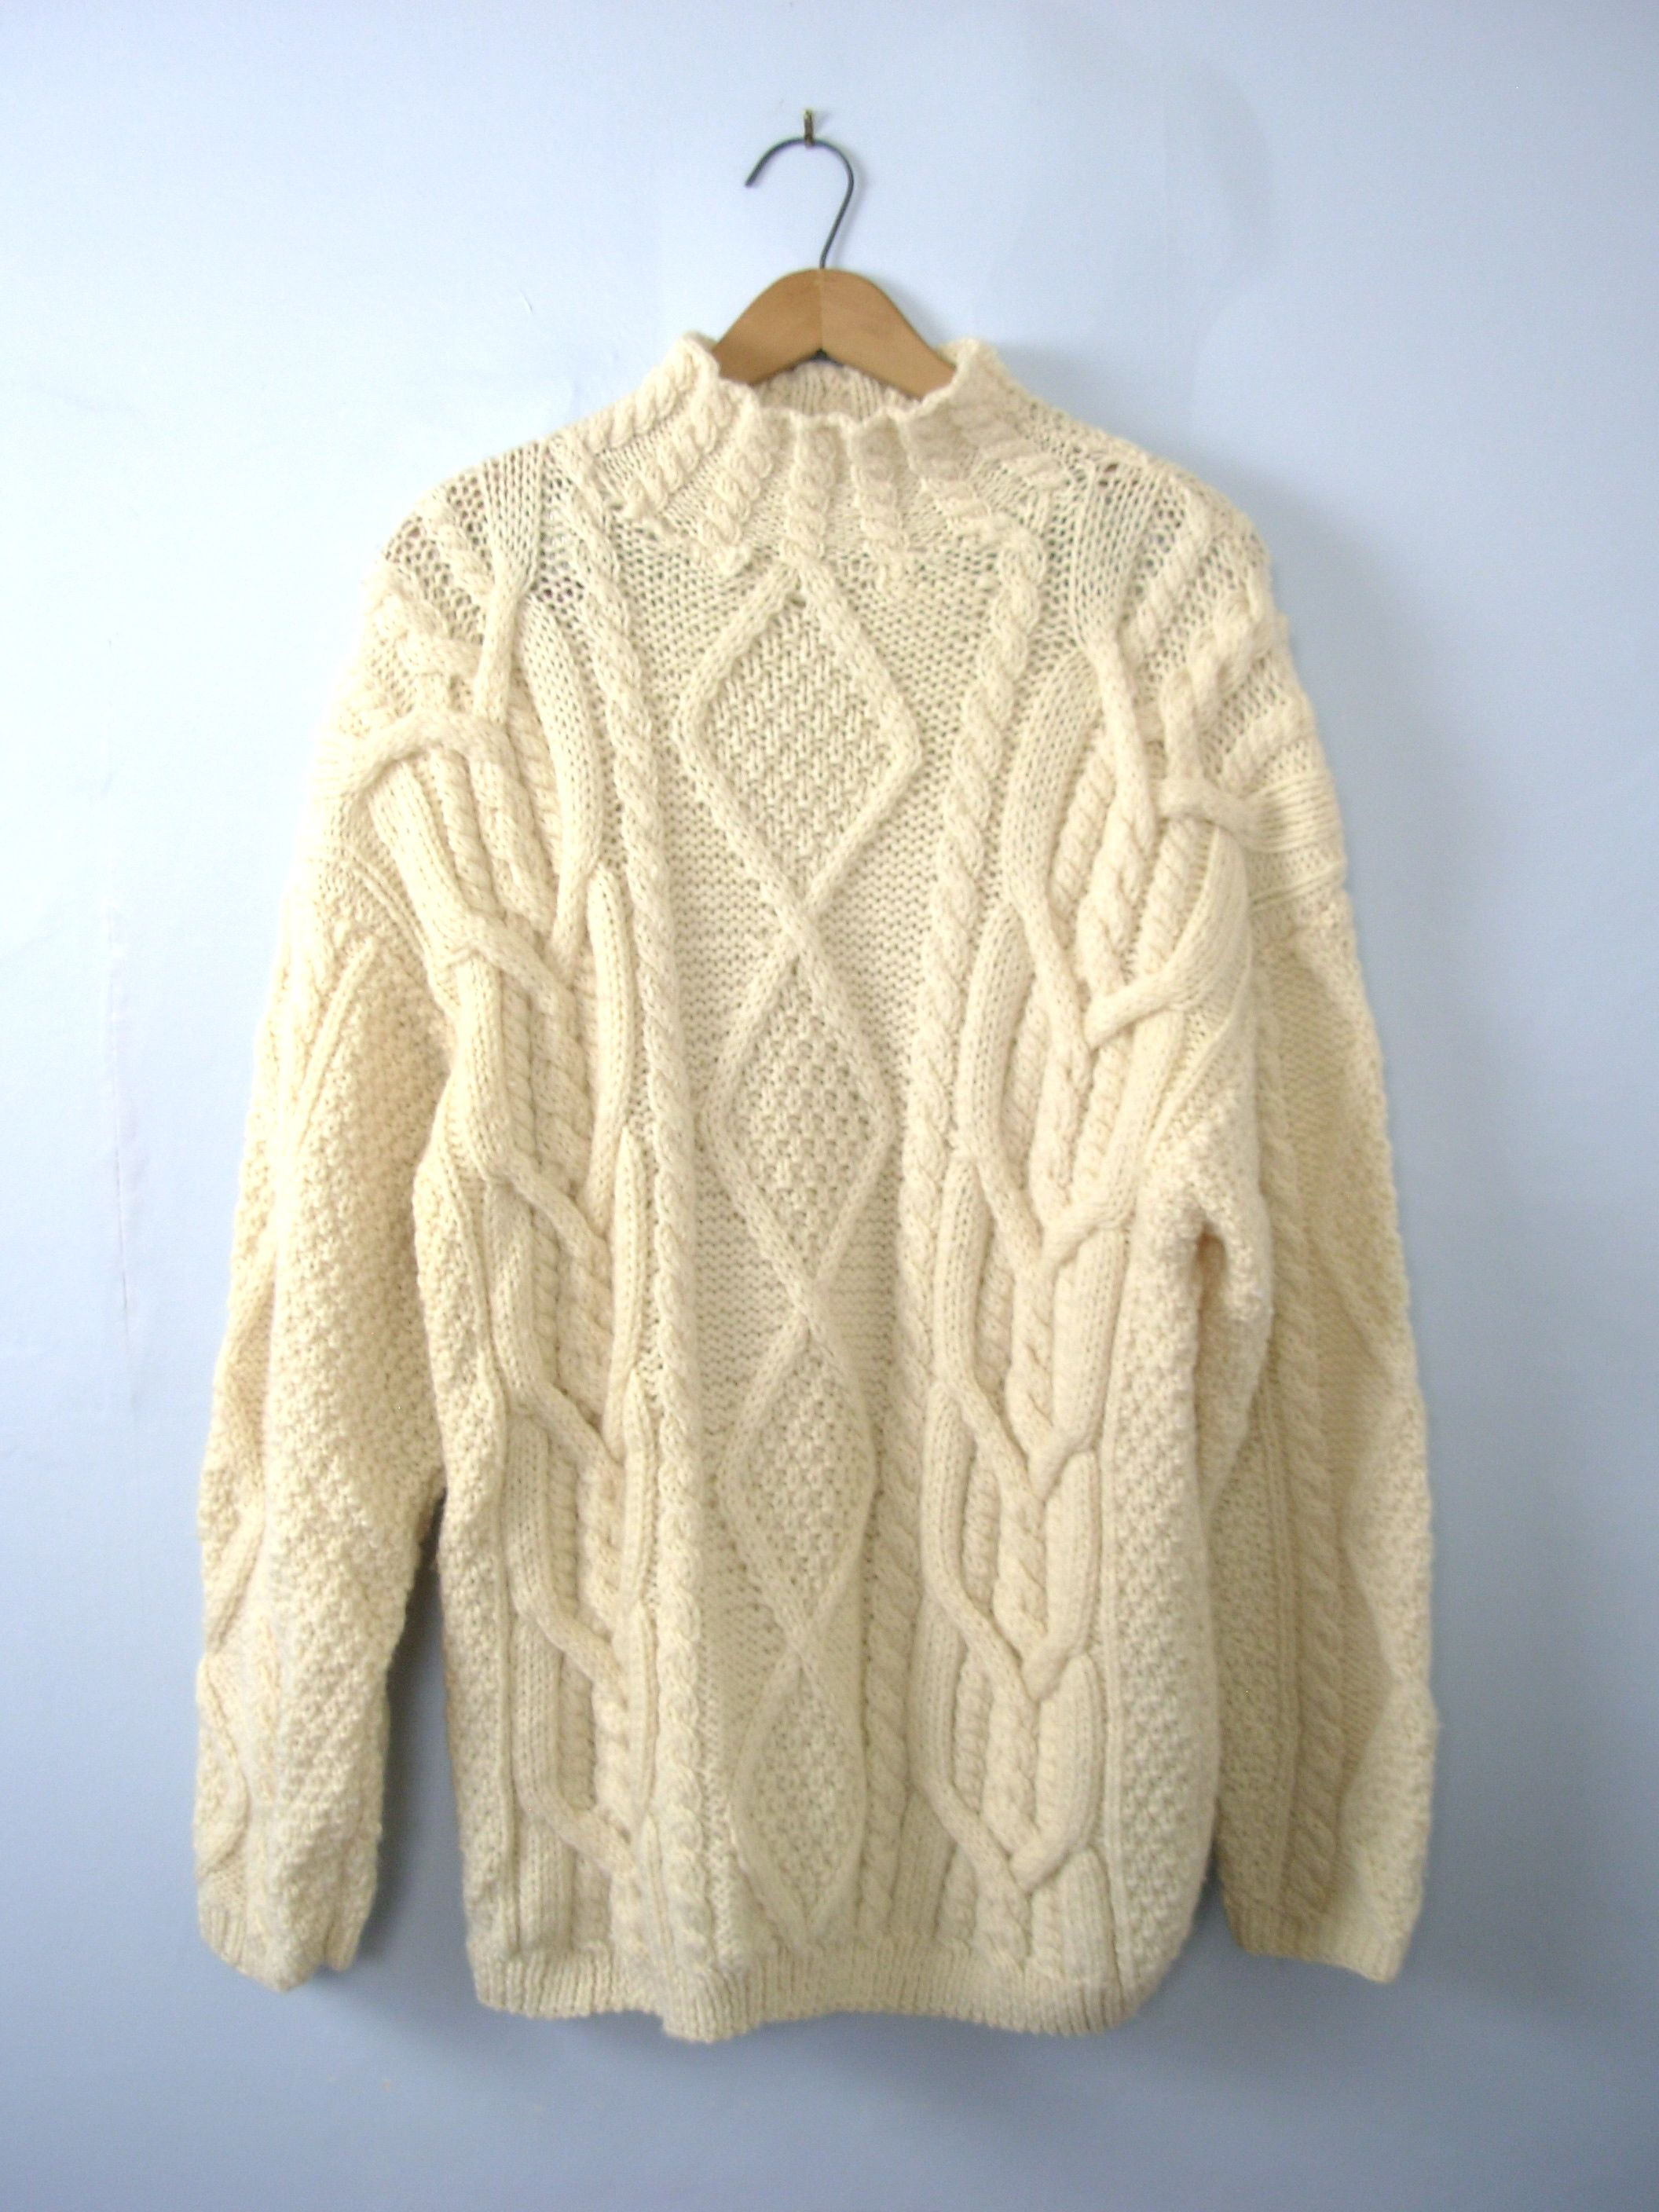 54591b1214a03f One vintage 1980's off white chunky wool cable knit sweater, fisherman's  sweater, women's size large - Mock turtleneck. - Dropped shoulder seams.